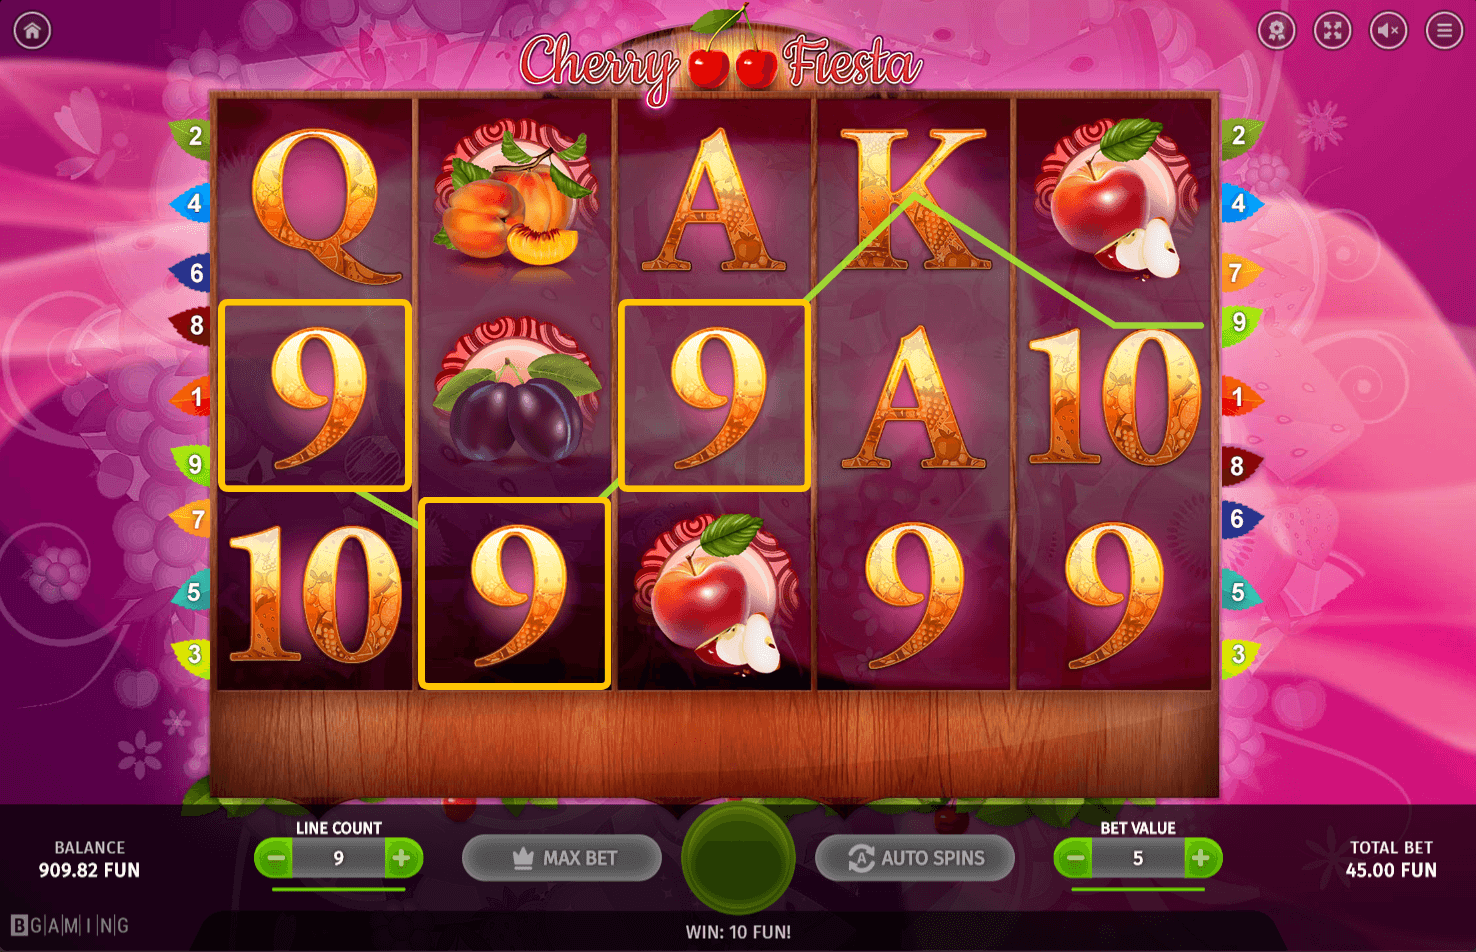 7/23/ · Cherry Fiesta video slot is presented in the online casinos, powered by the software developed by SoftSwiss company.Our reviewers were testing this slot machine without registration in a fun mode in Evolution Casino, which accepts payments only .